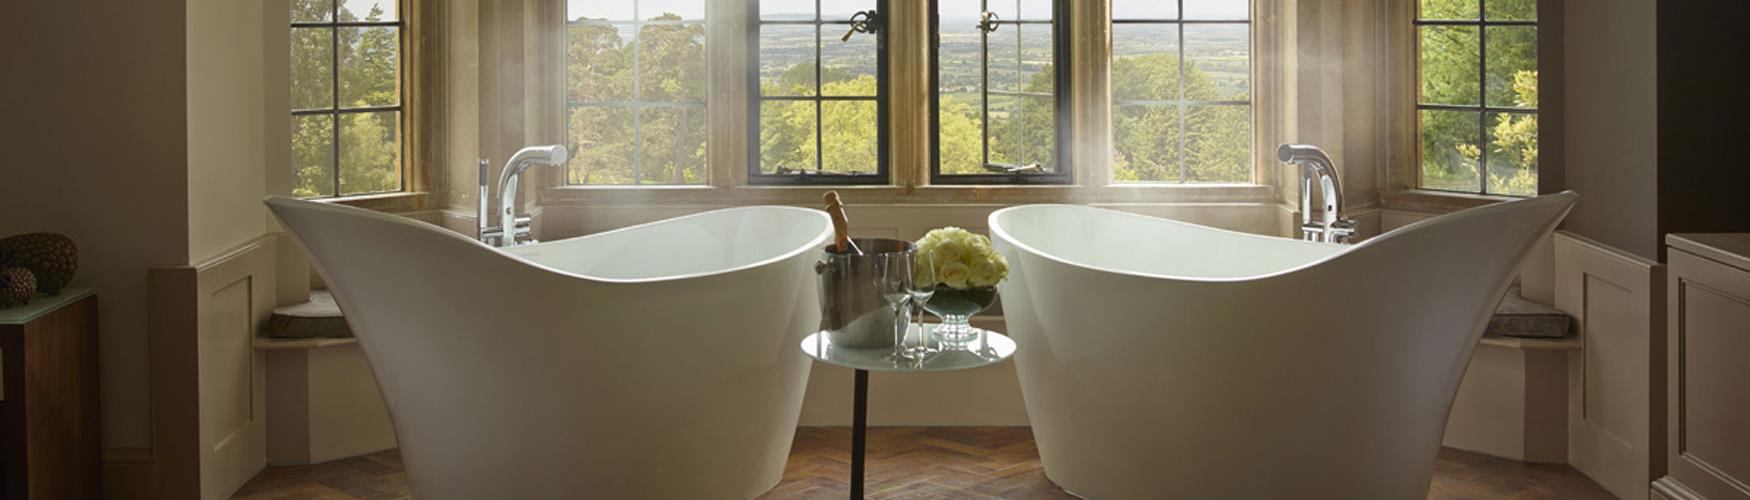 The baths in the Oak Suite at Foxhill Manor